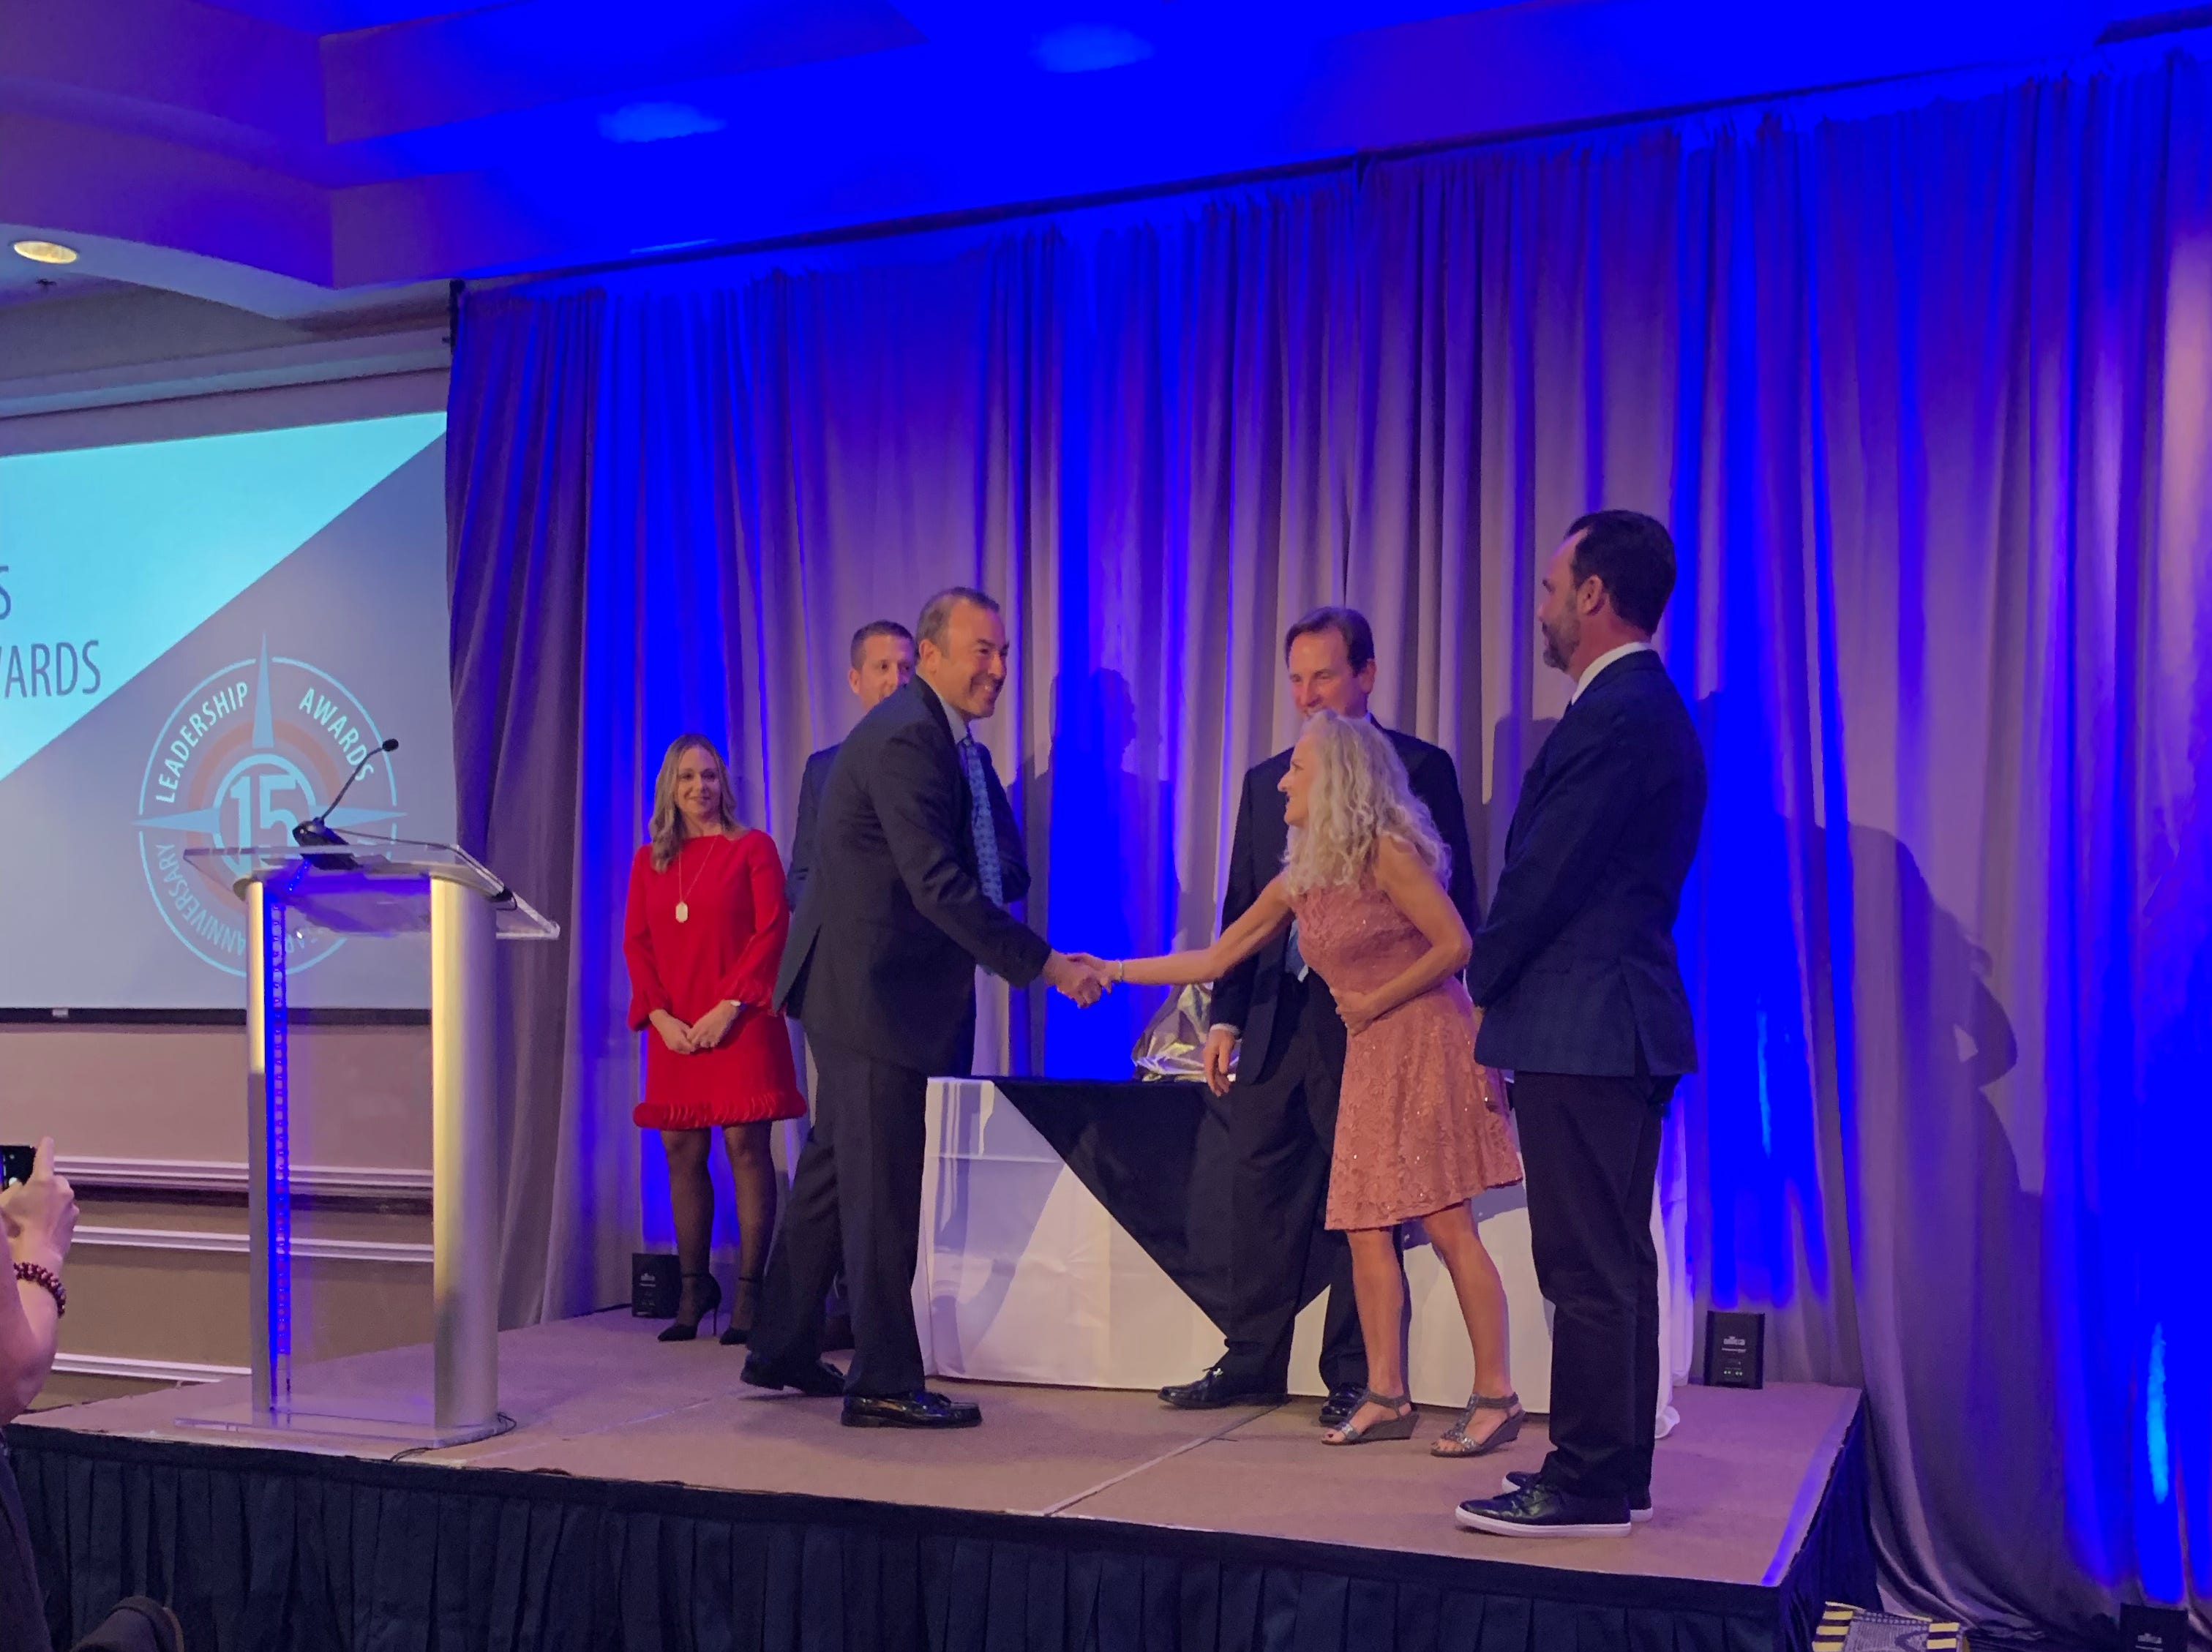 The 2019 recipient of the Rodney S. Ketcham Leadership Icon Award goes to Keith Winsten, Executive Director, Brevard Zoo Sponsored by Canaveral Port Authority and W + J Construction.  Presented by Chairman of the Canaveral Port Authority, Commissioner Micah Loyd and Jen Rogers, Project Development Director, W + J Construction  Dale and Sue Ketcham